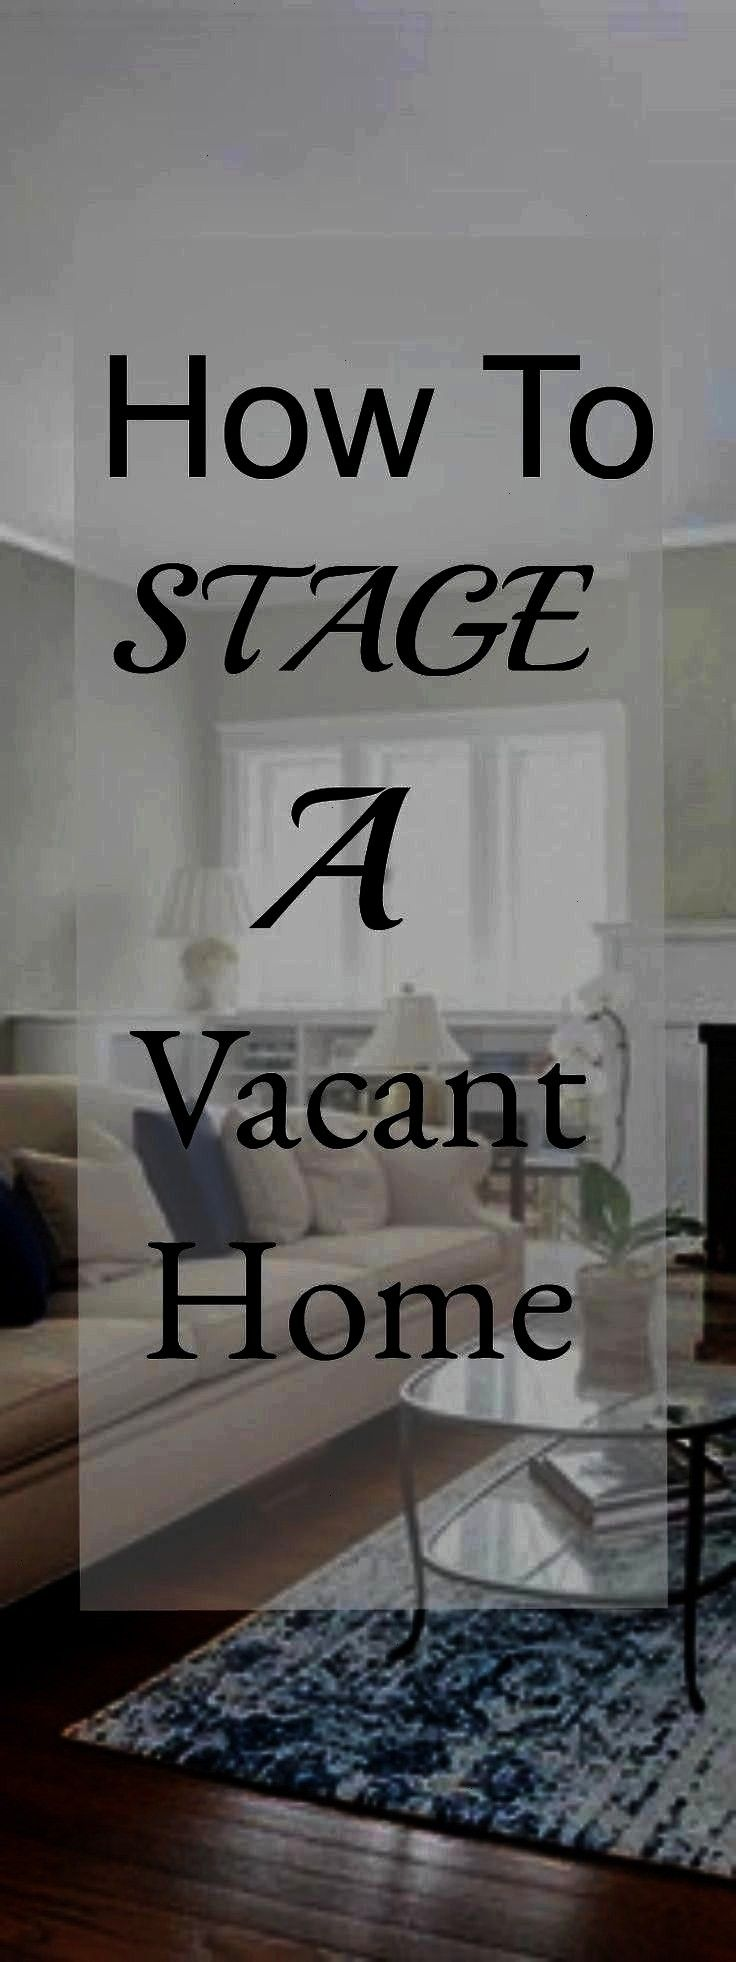 to Stage A Vacant Home Vacant Home Staging Tips How to Stage A Vacant Home Vacant Home Staging Tips How to Stage A Vacant Home Empty houses can feel cold and uninviting t...